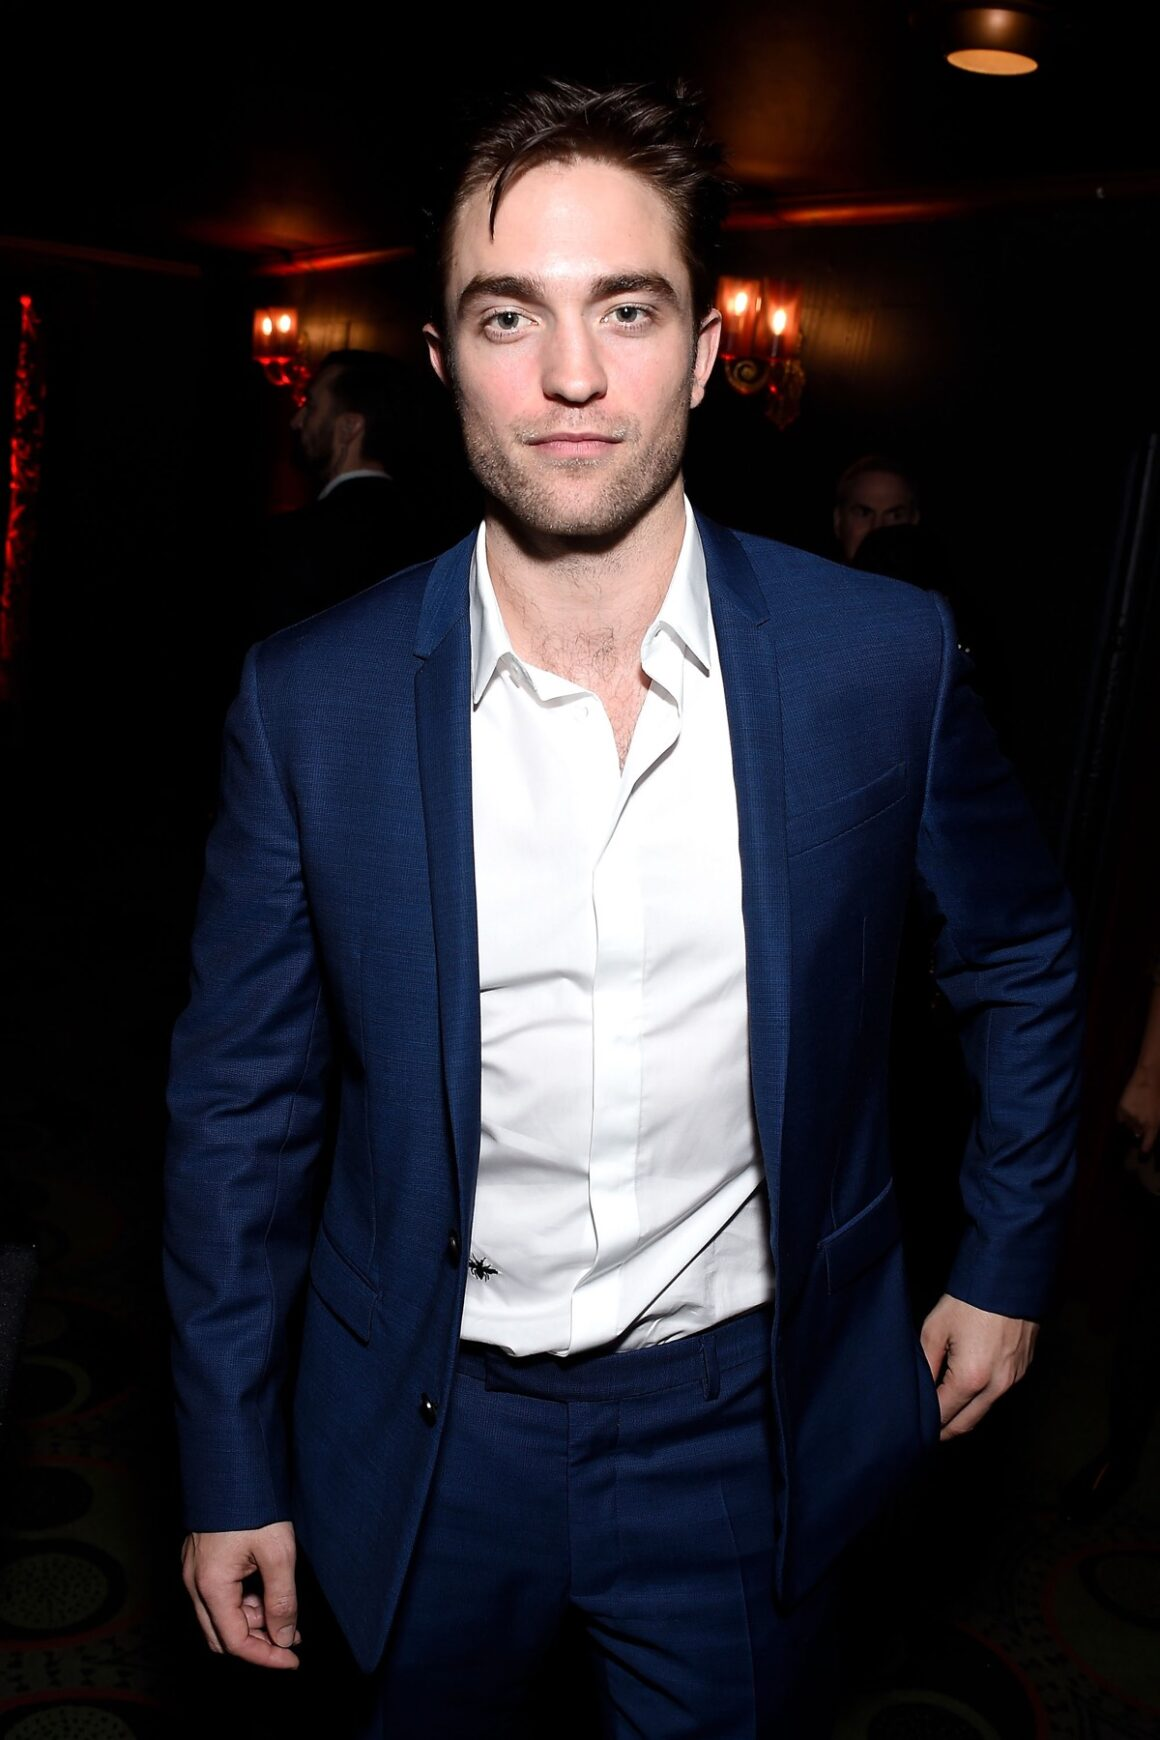 Robert Pattinson L.A. Dance Project's Annual Gala - Cocktails And After Party